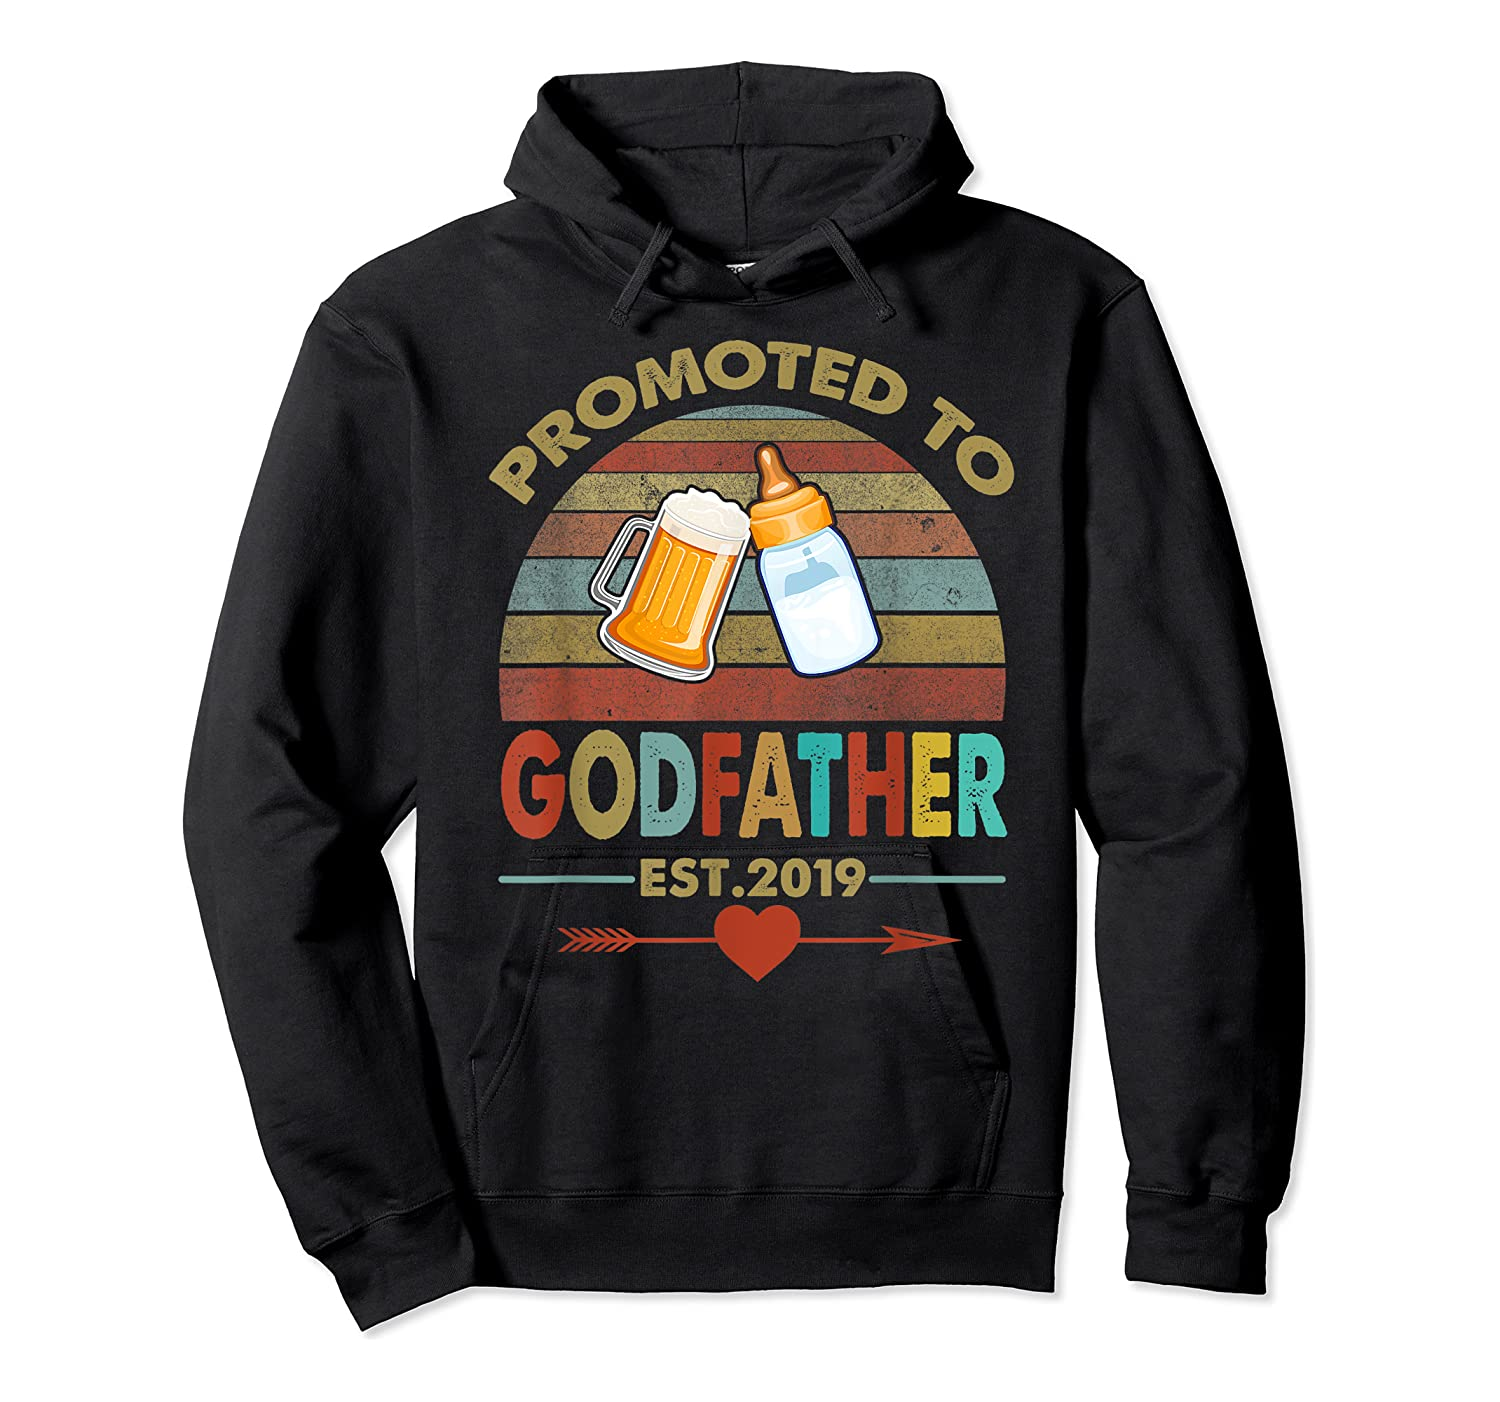 Promoted To Godfather Est 2019 Vintage Arrow Shirts Unisex Pullover Hoodie